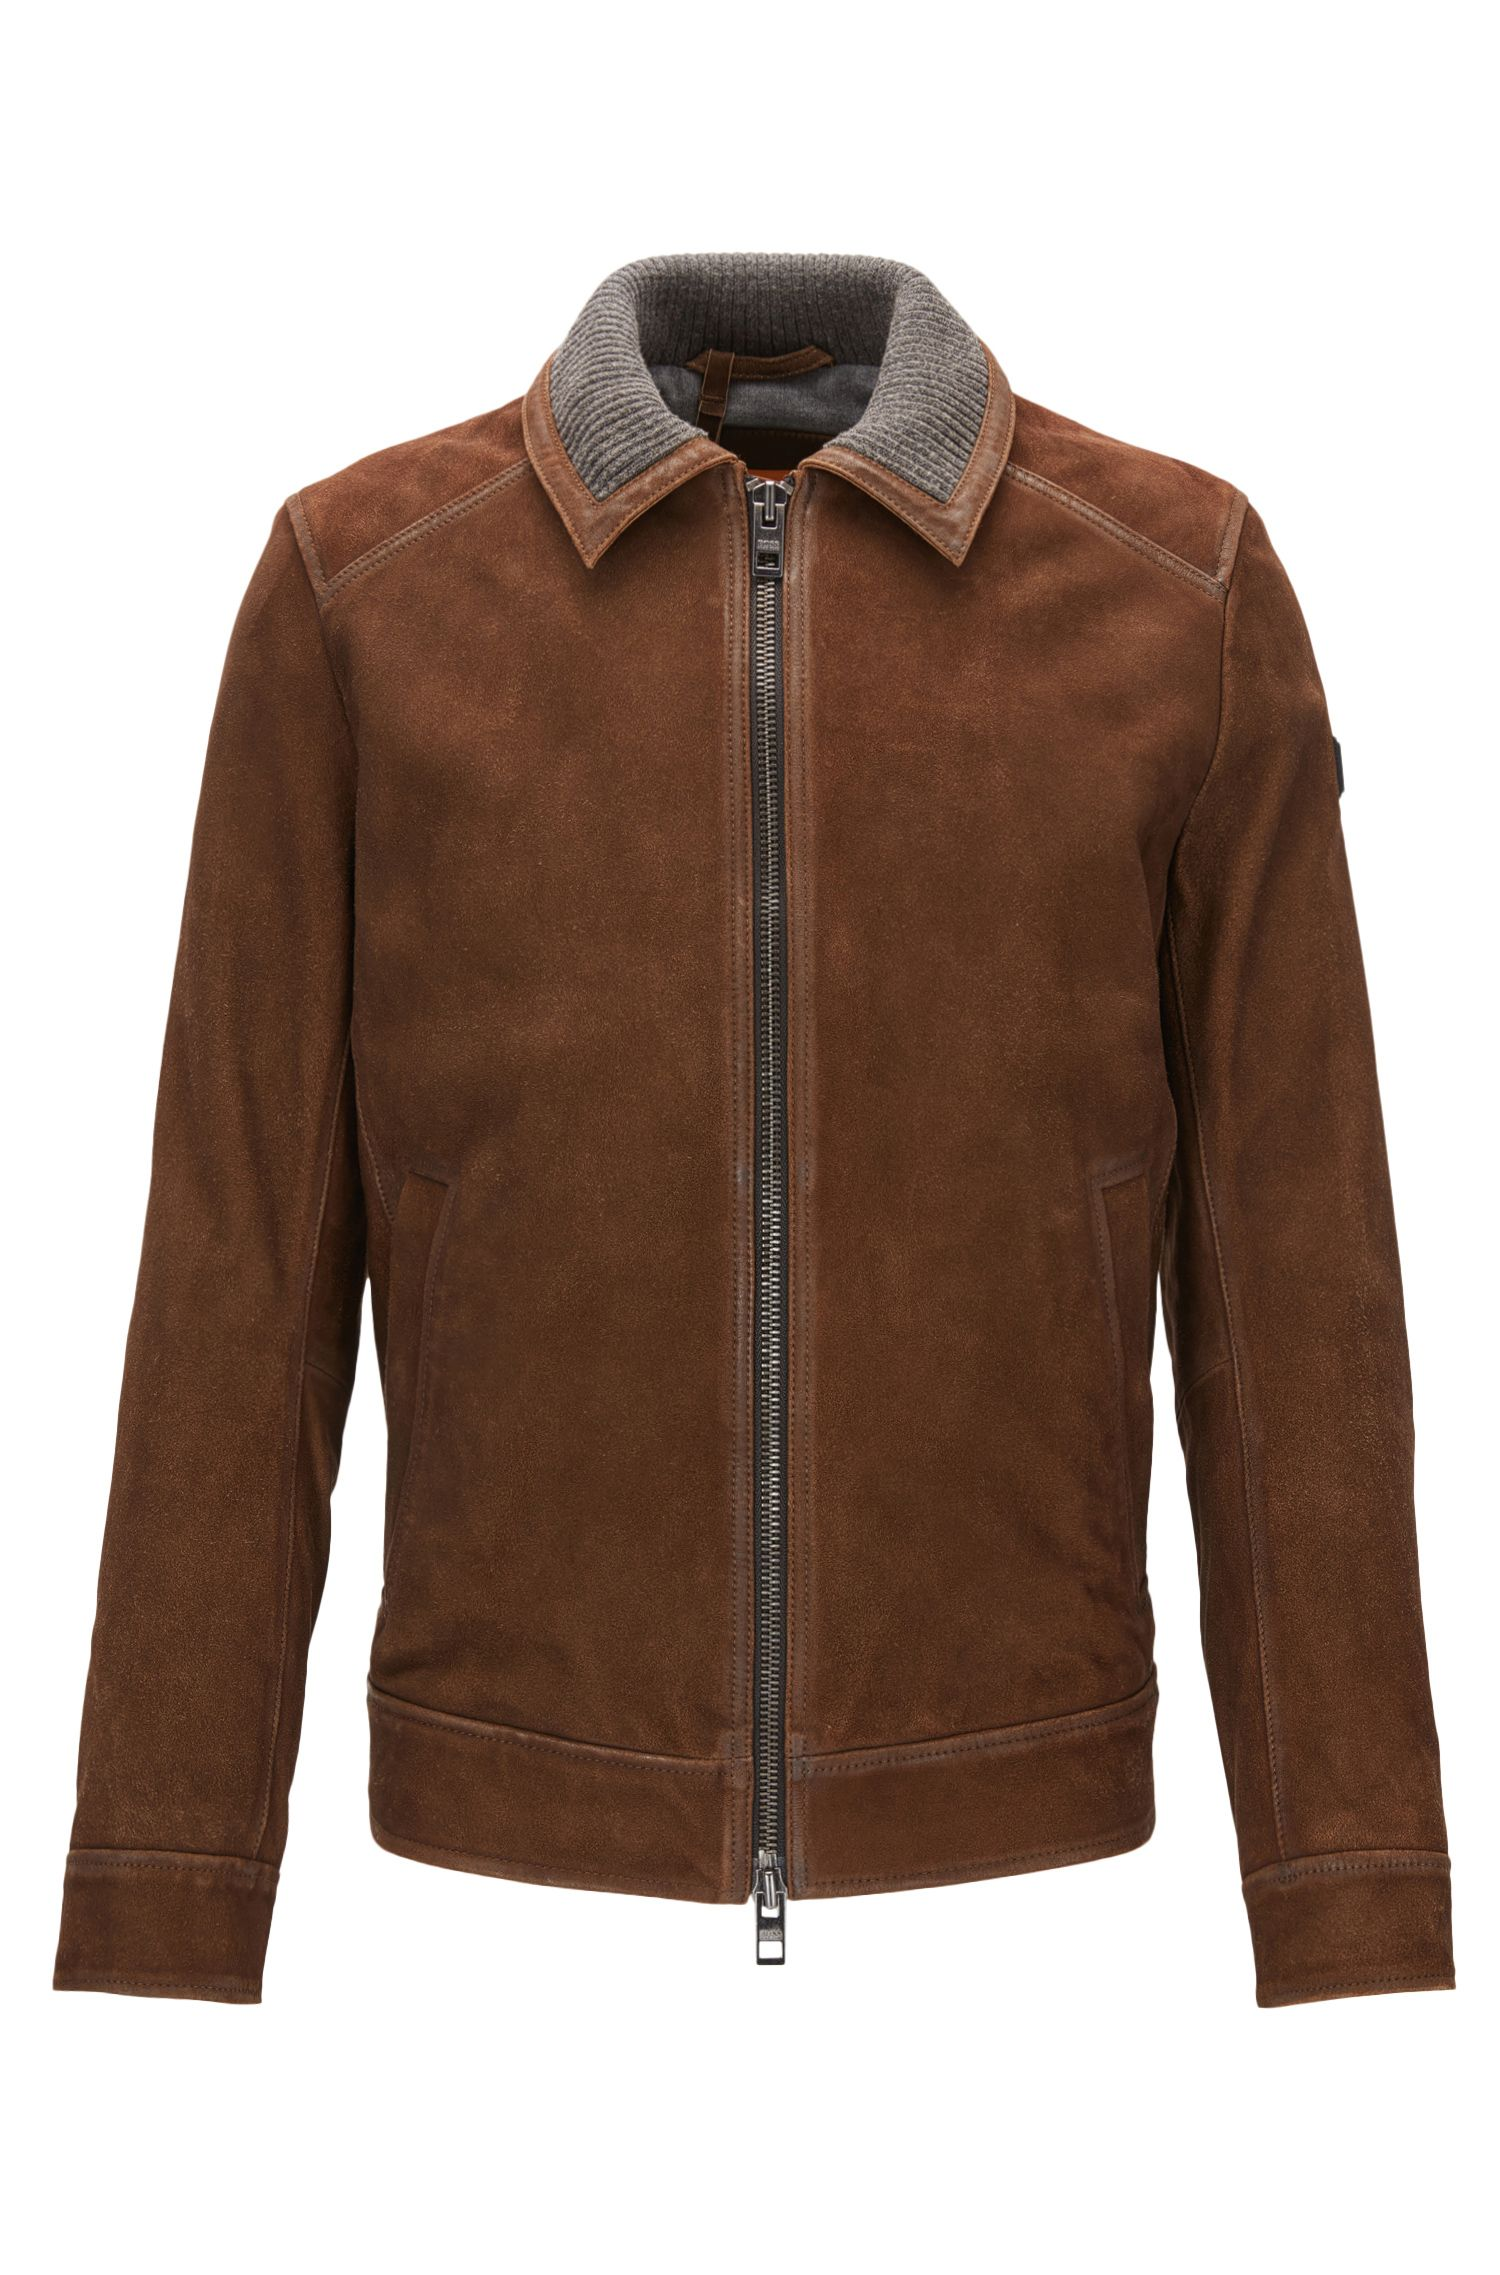 Slim-fit suede jacket with knitted inner collar